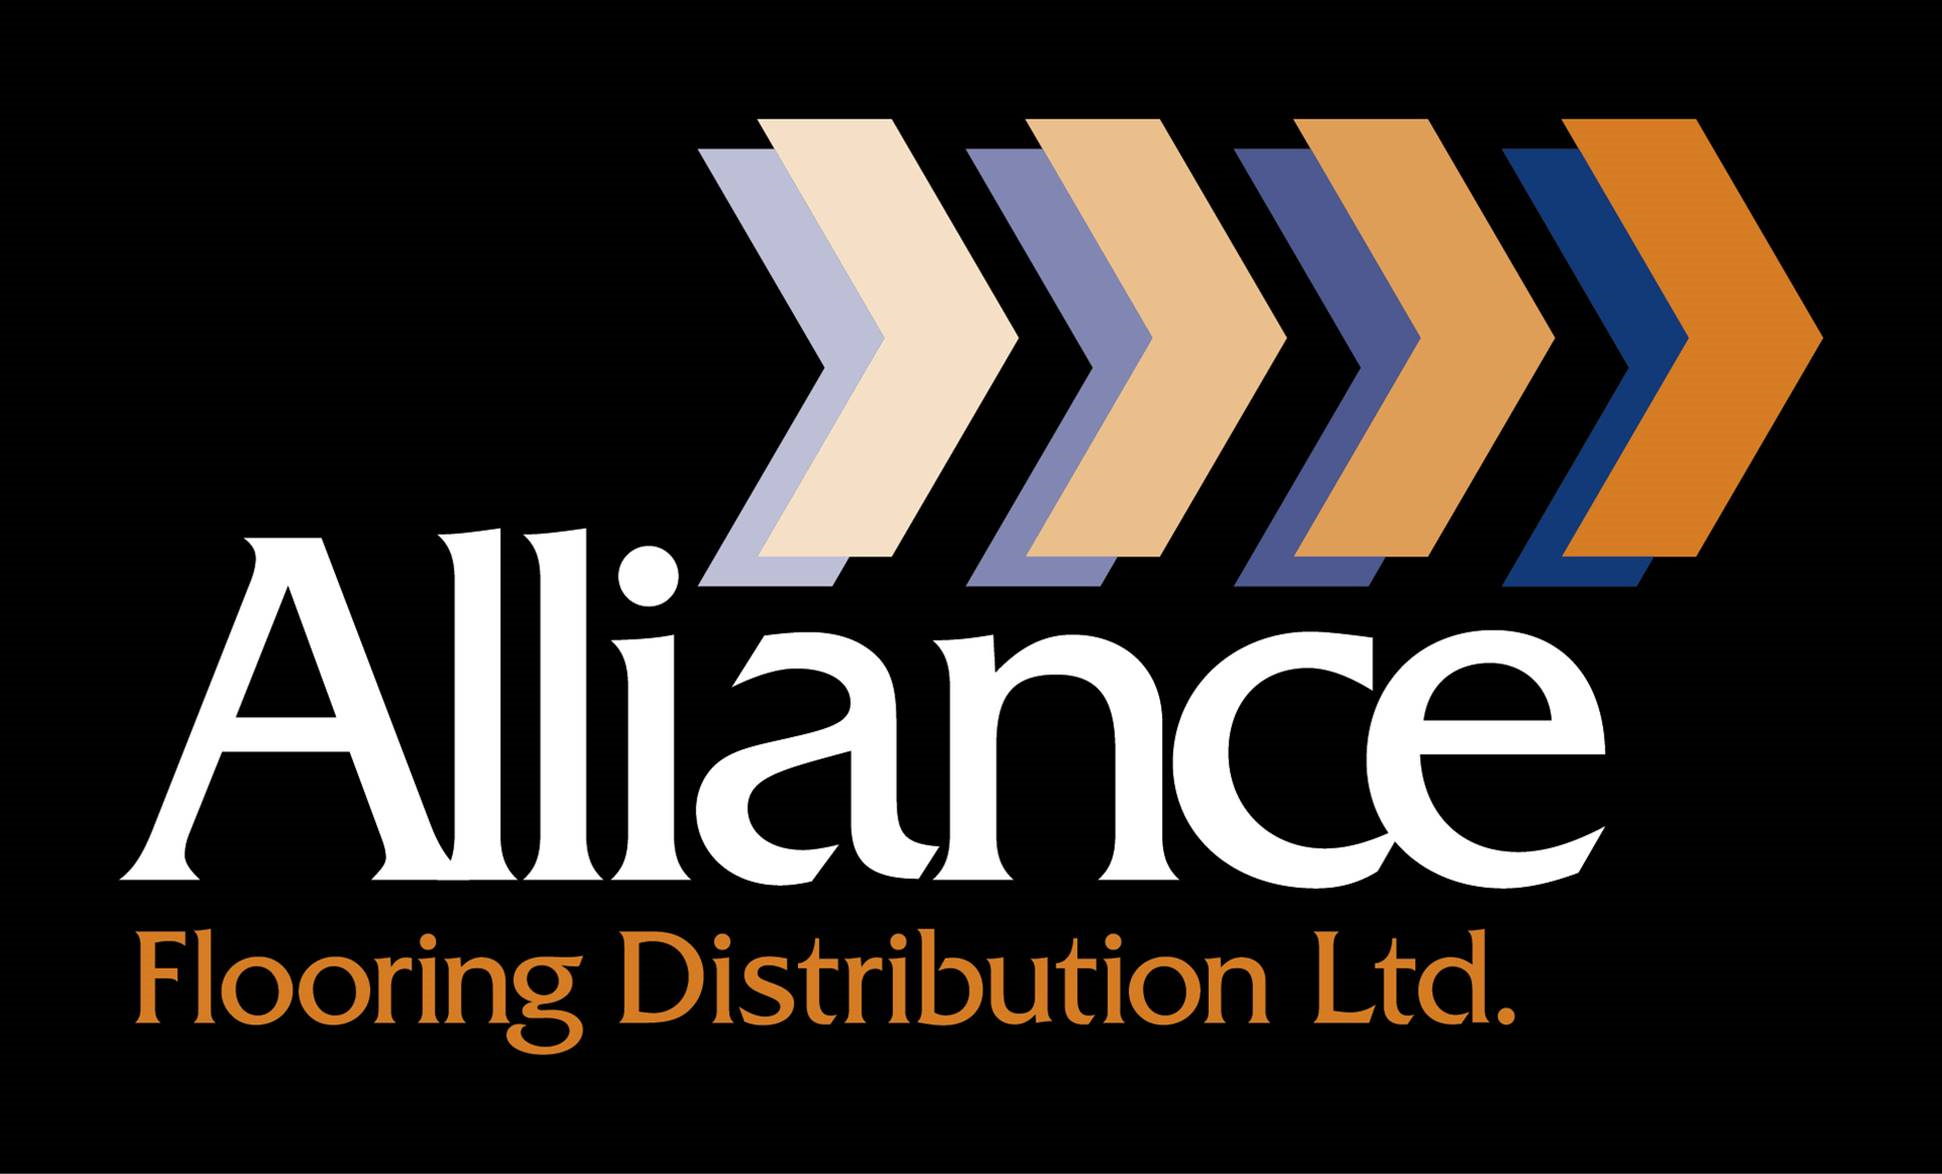 https://quicklinestorage.co.uk/wp-content/uploads/2018/05/Alliance-logo-quickline-storage-racking.png